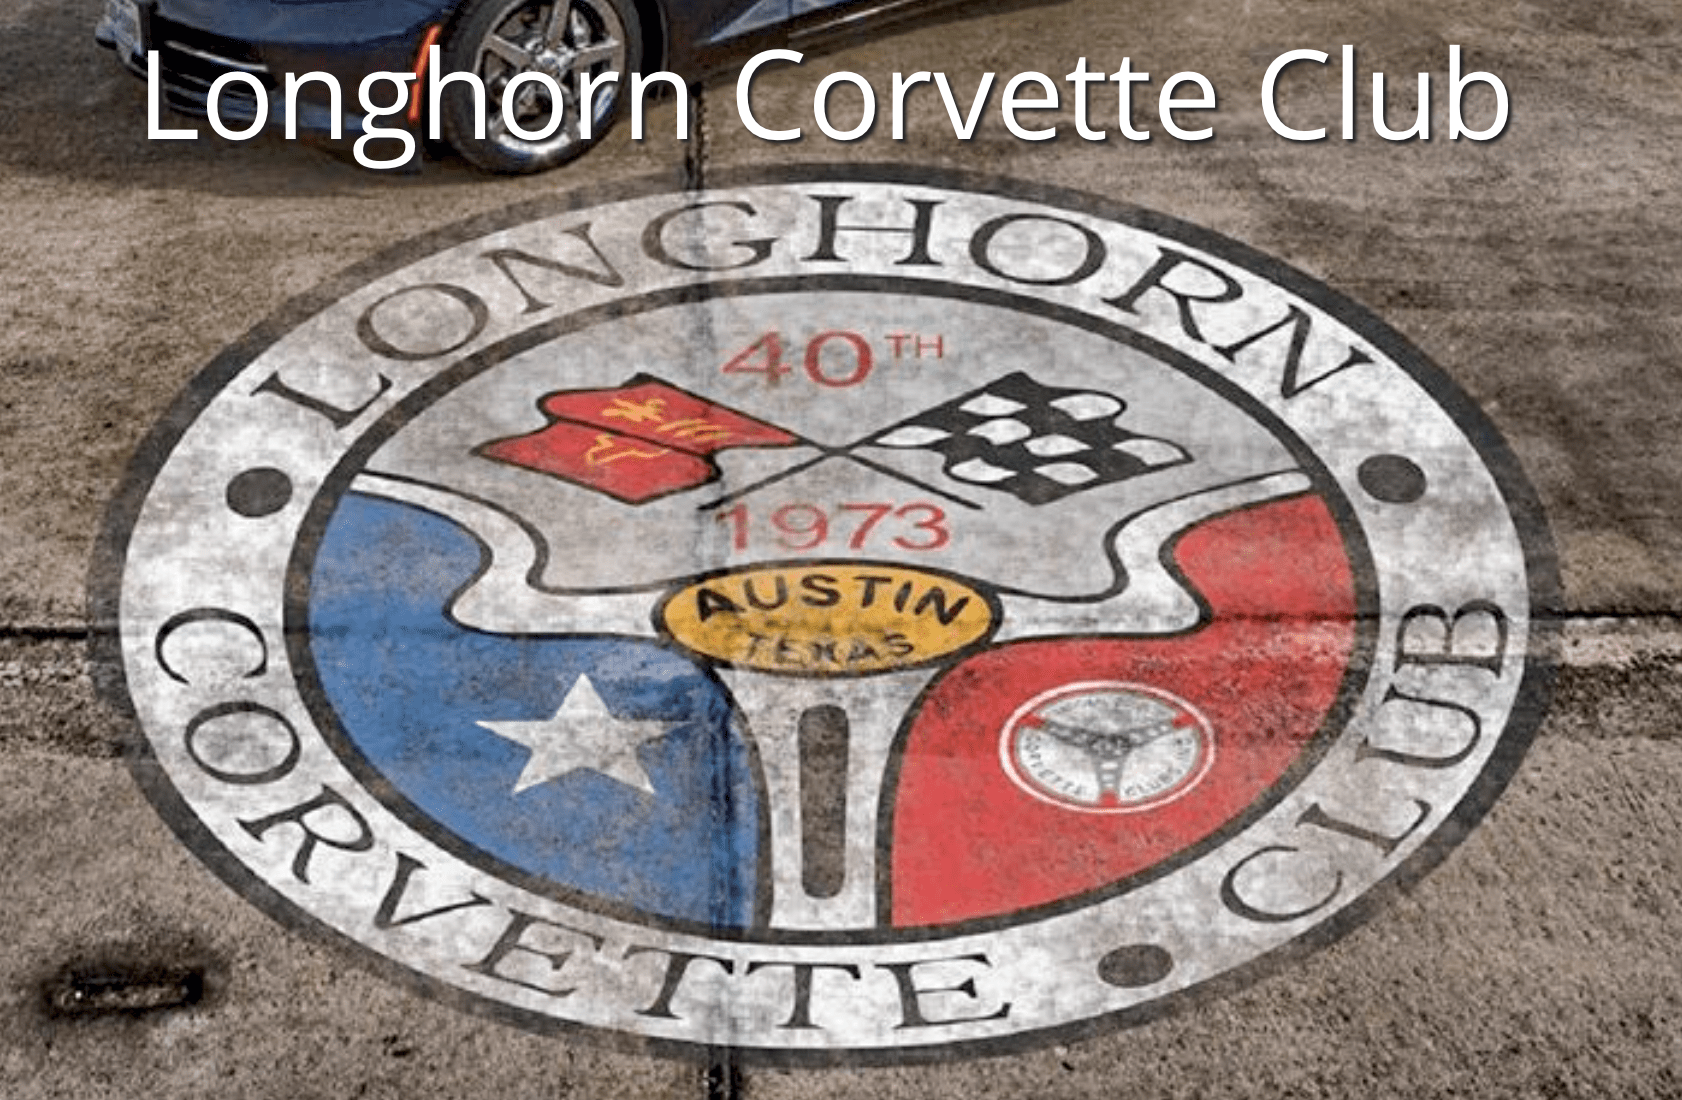 Select to sign up to ride with the Longhorn Corvette Club (as space is available)